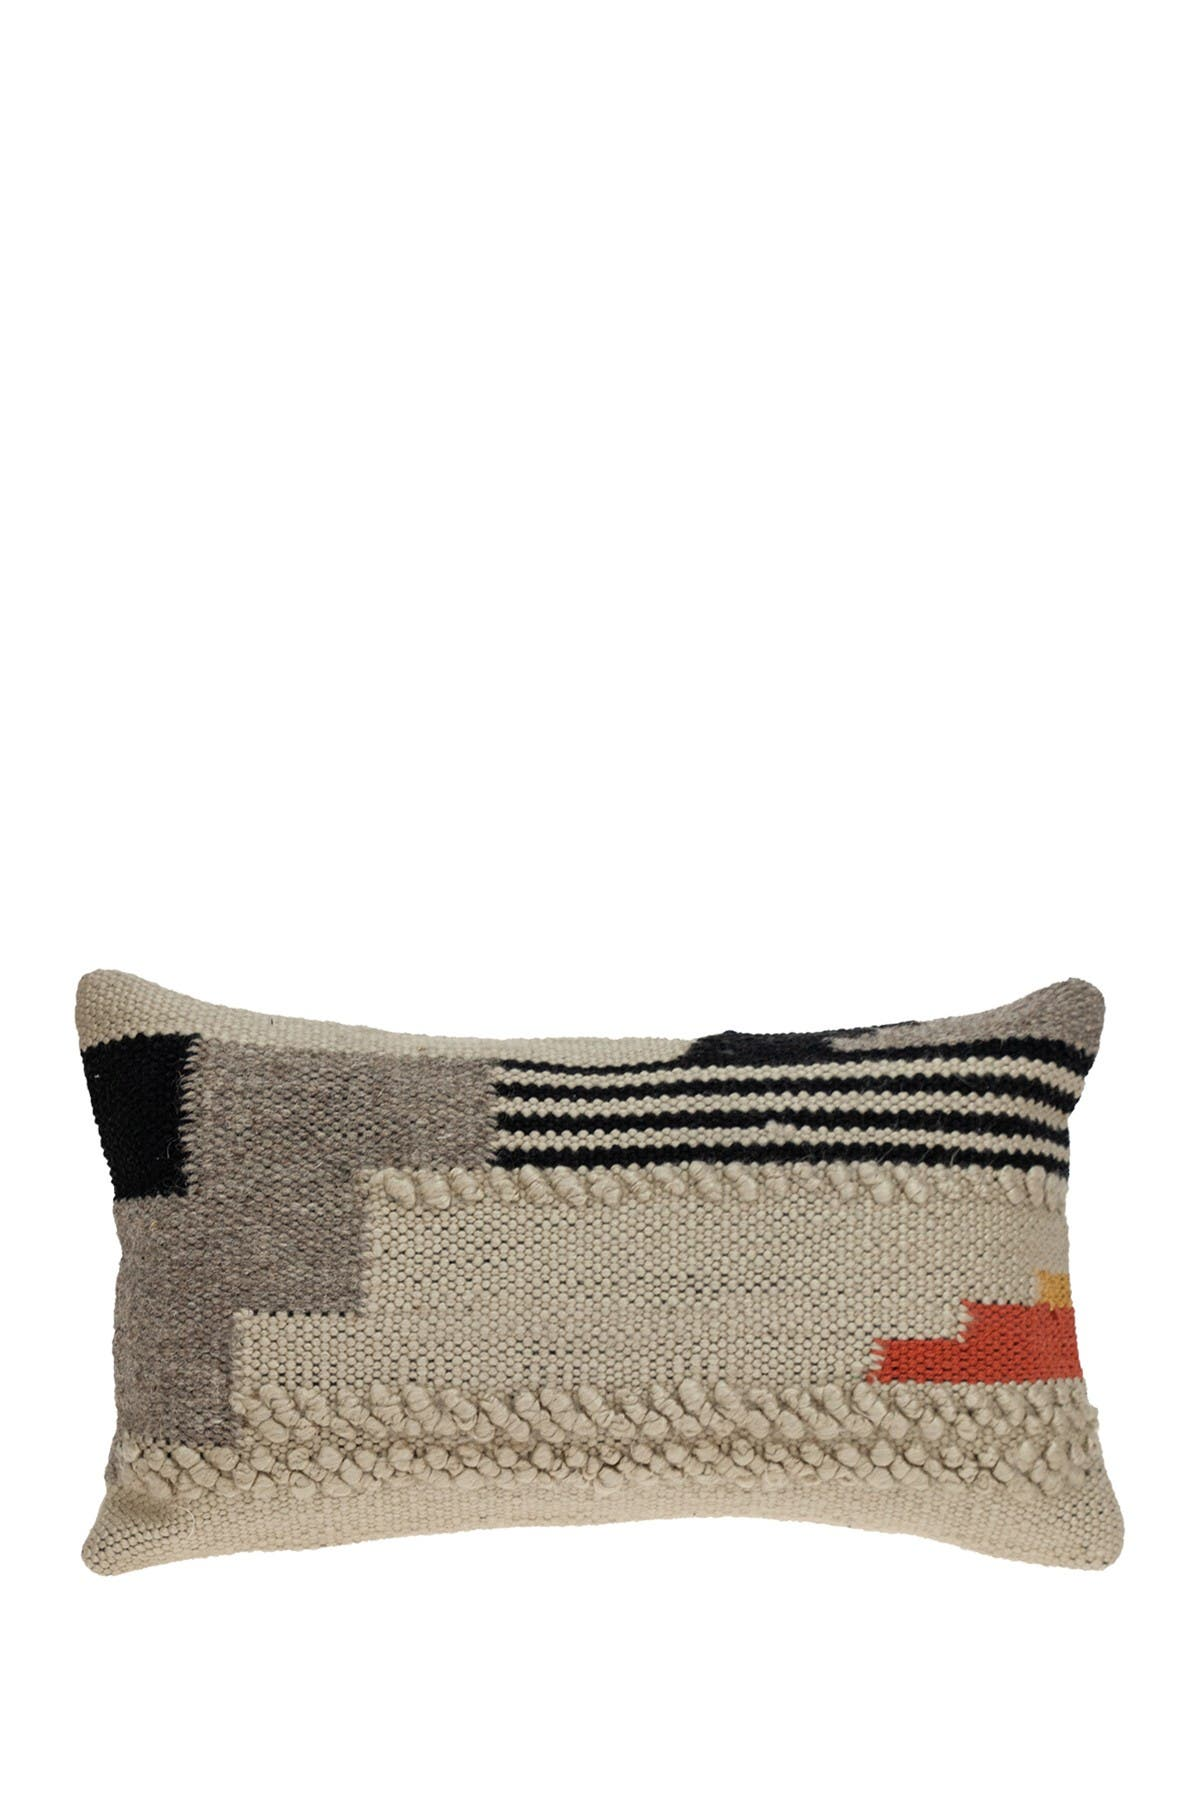 Image of Parkland Collection Harvest Transitional Beige Throw Pillow